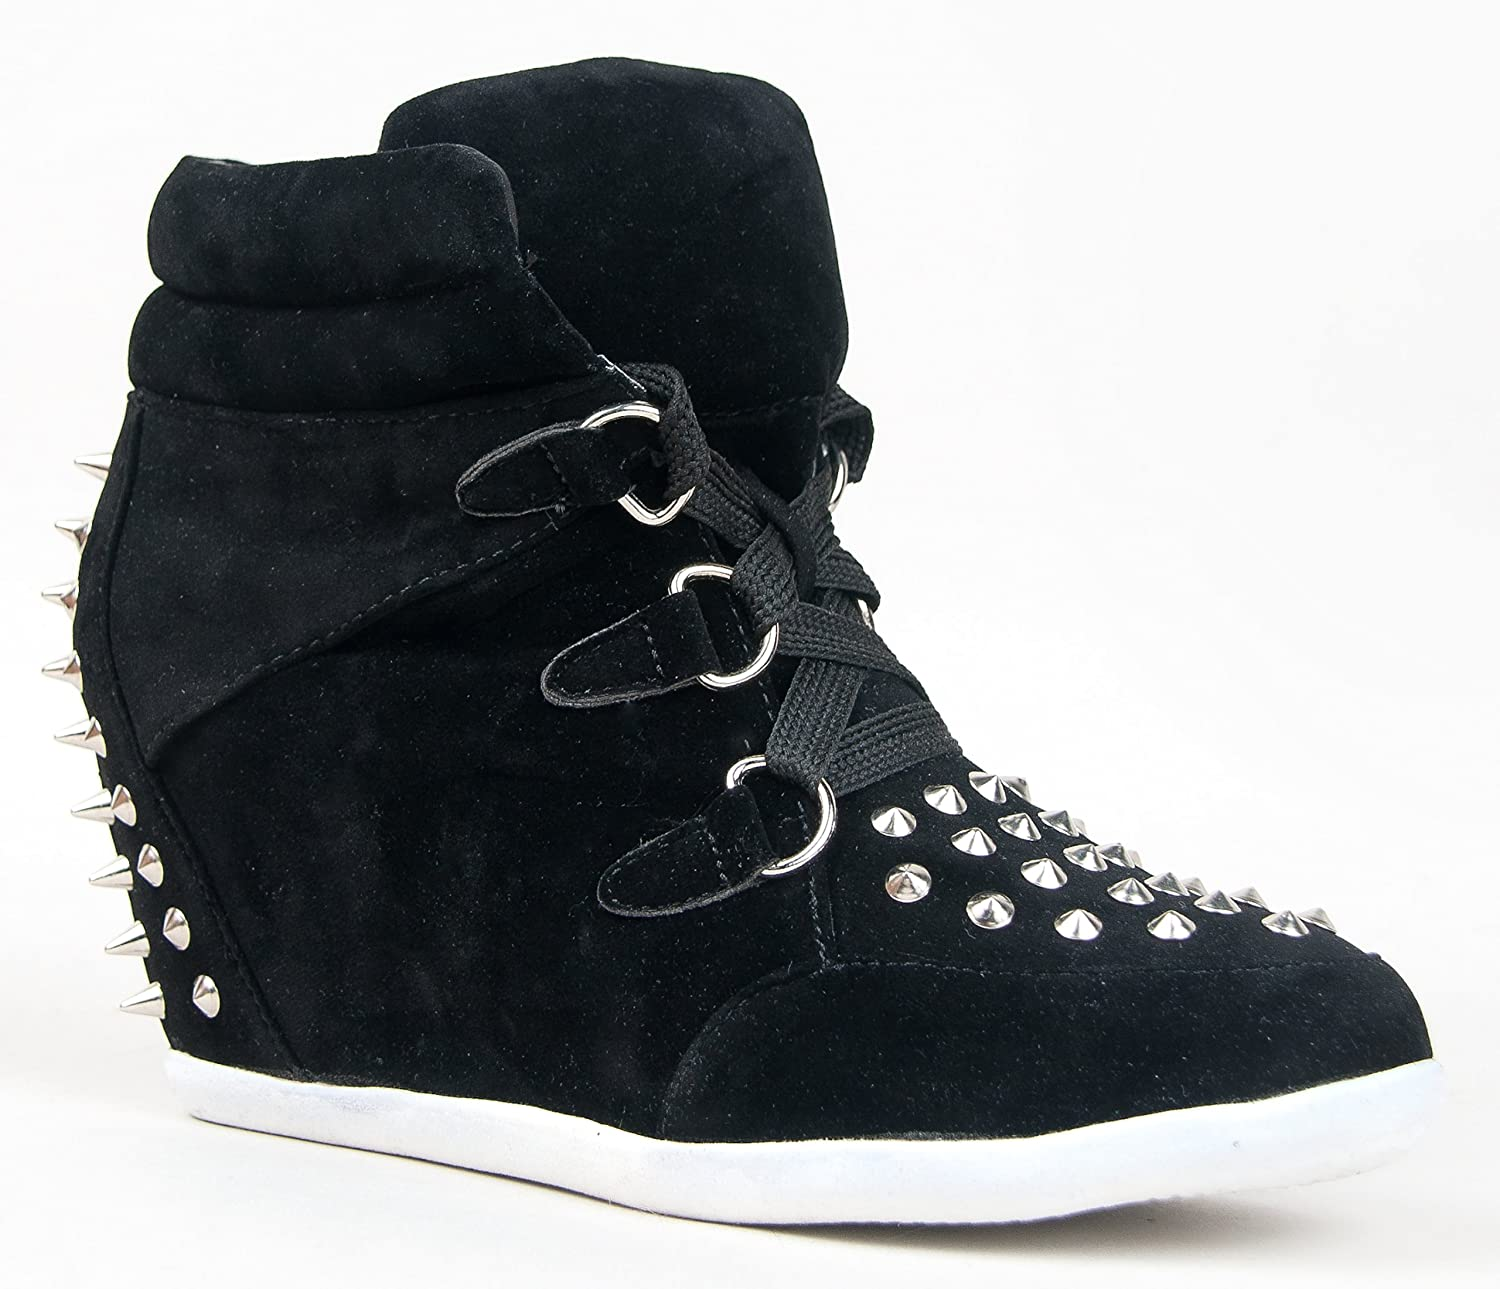 2f96ee124 Glaze Women's Synthetic Alana-57 Studded Spike Lace Up High Top Hidden  Wedge Heel Sneaker Shoe 9 B(M) US Black: Amazon.co.uk: Shoes & Bags